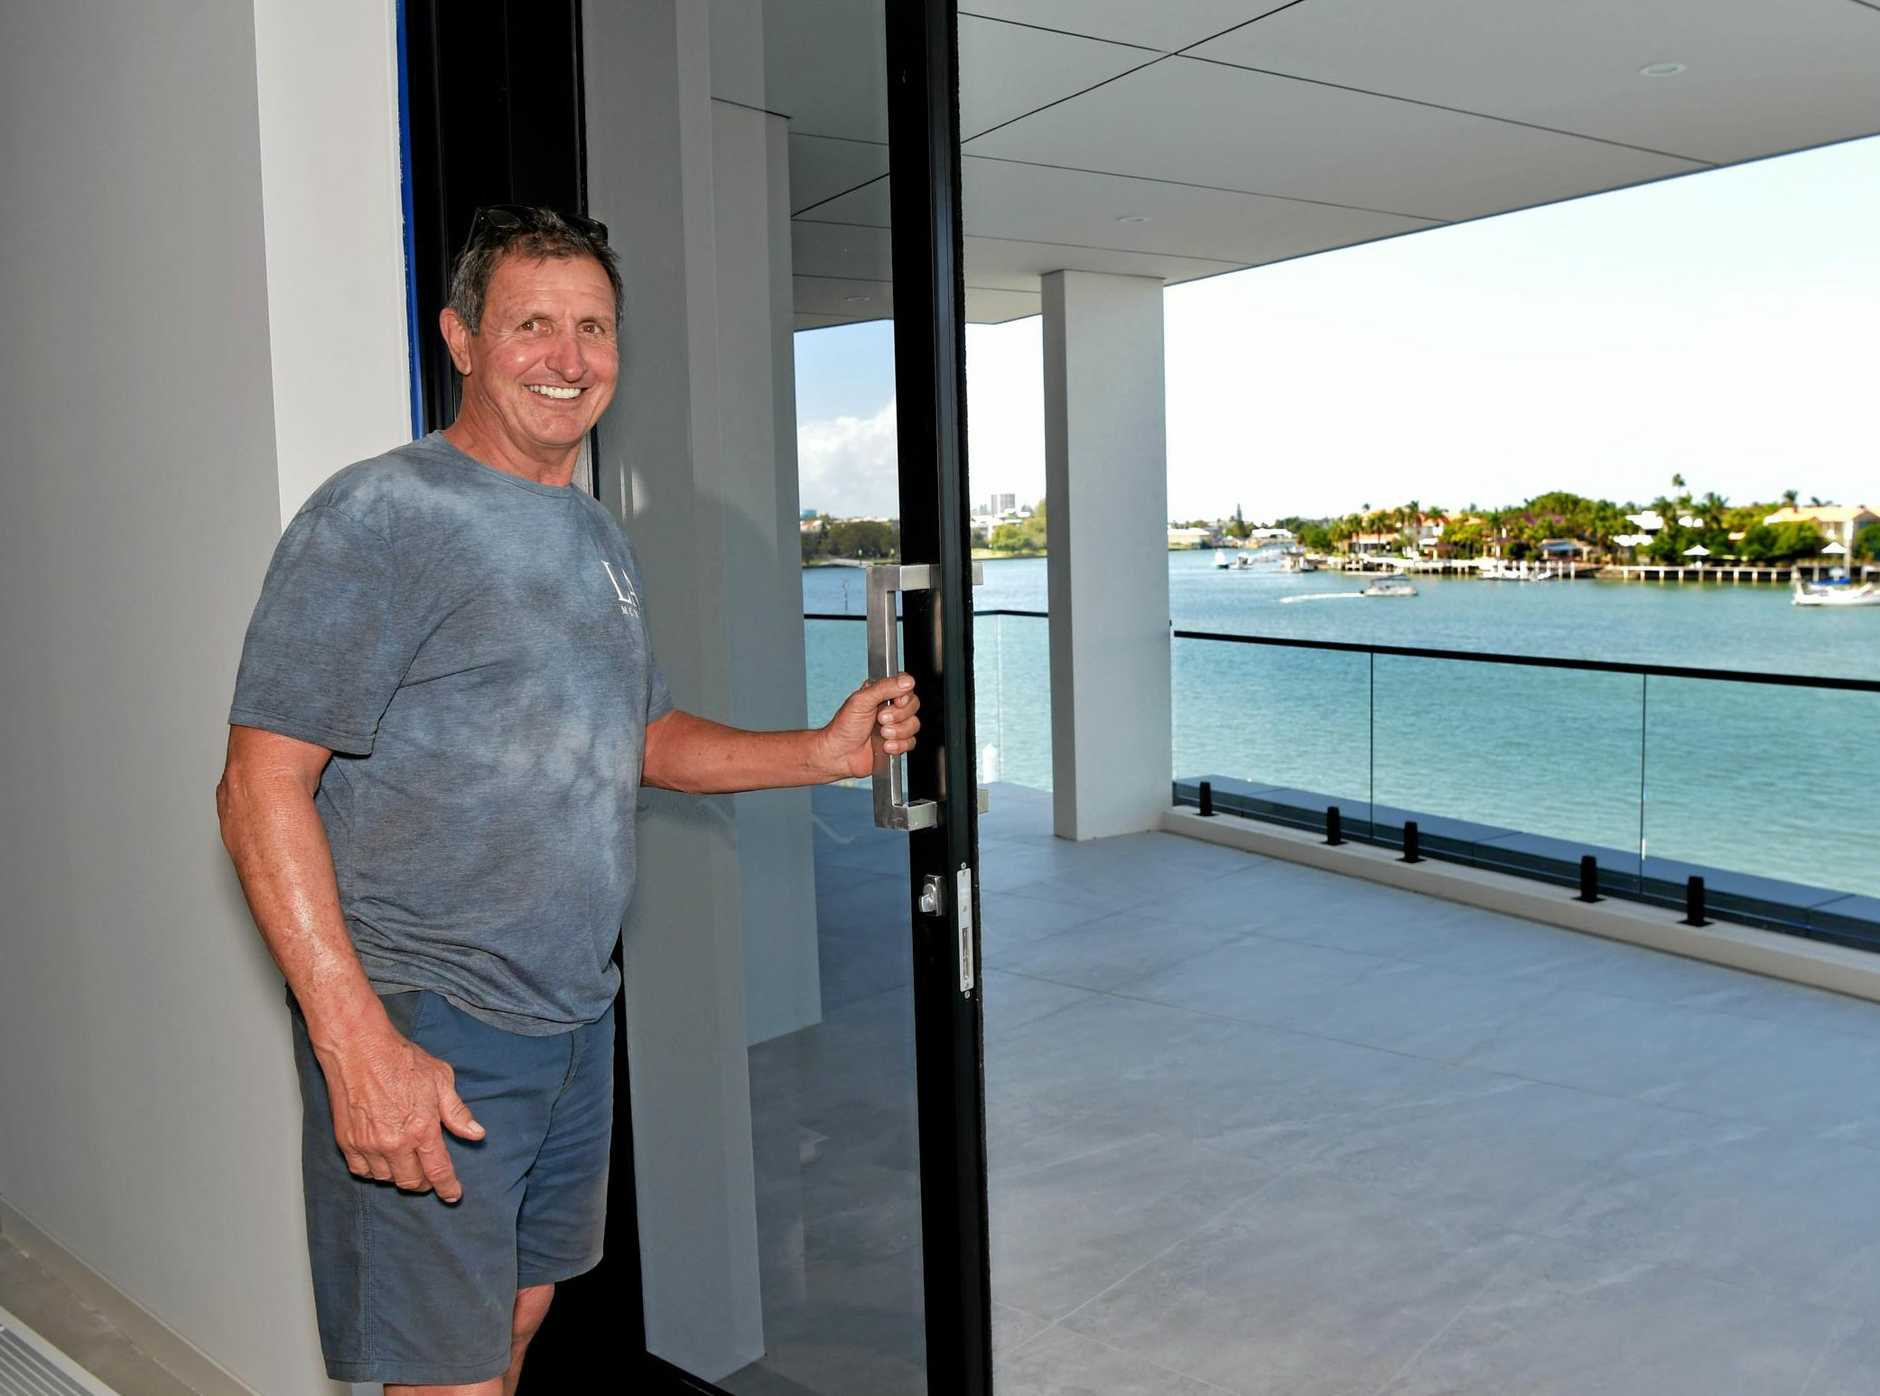 Laz Dzufer inspects progress on the Tangalooma Residences development.